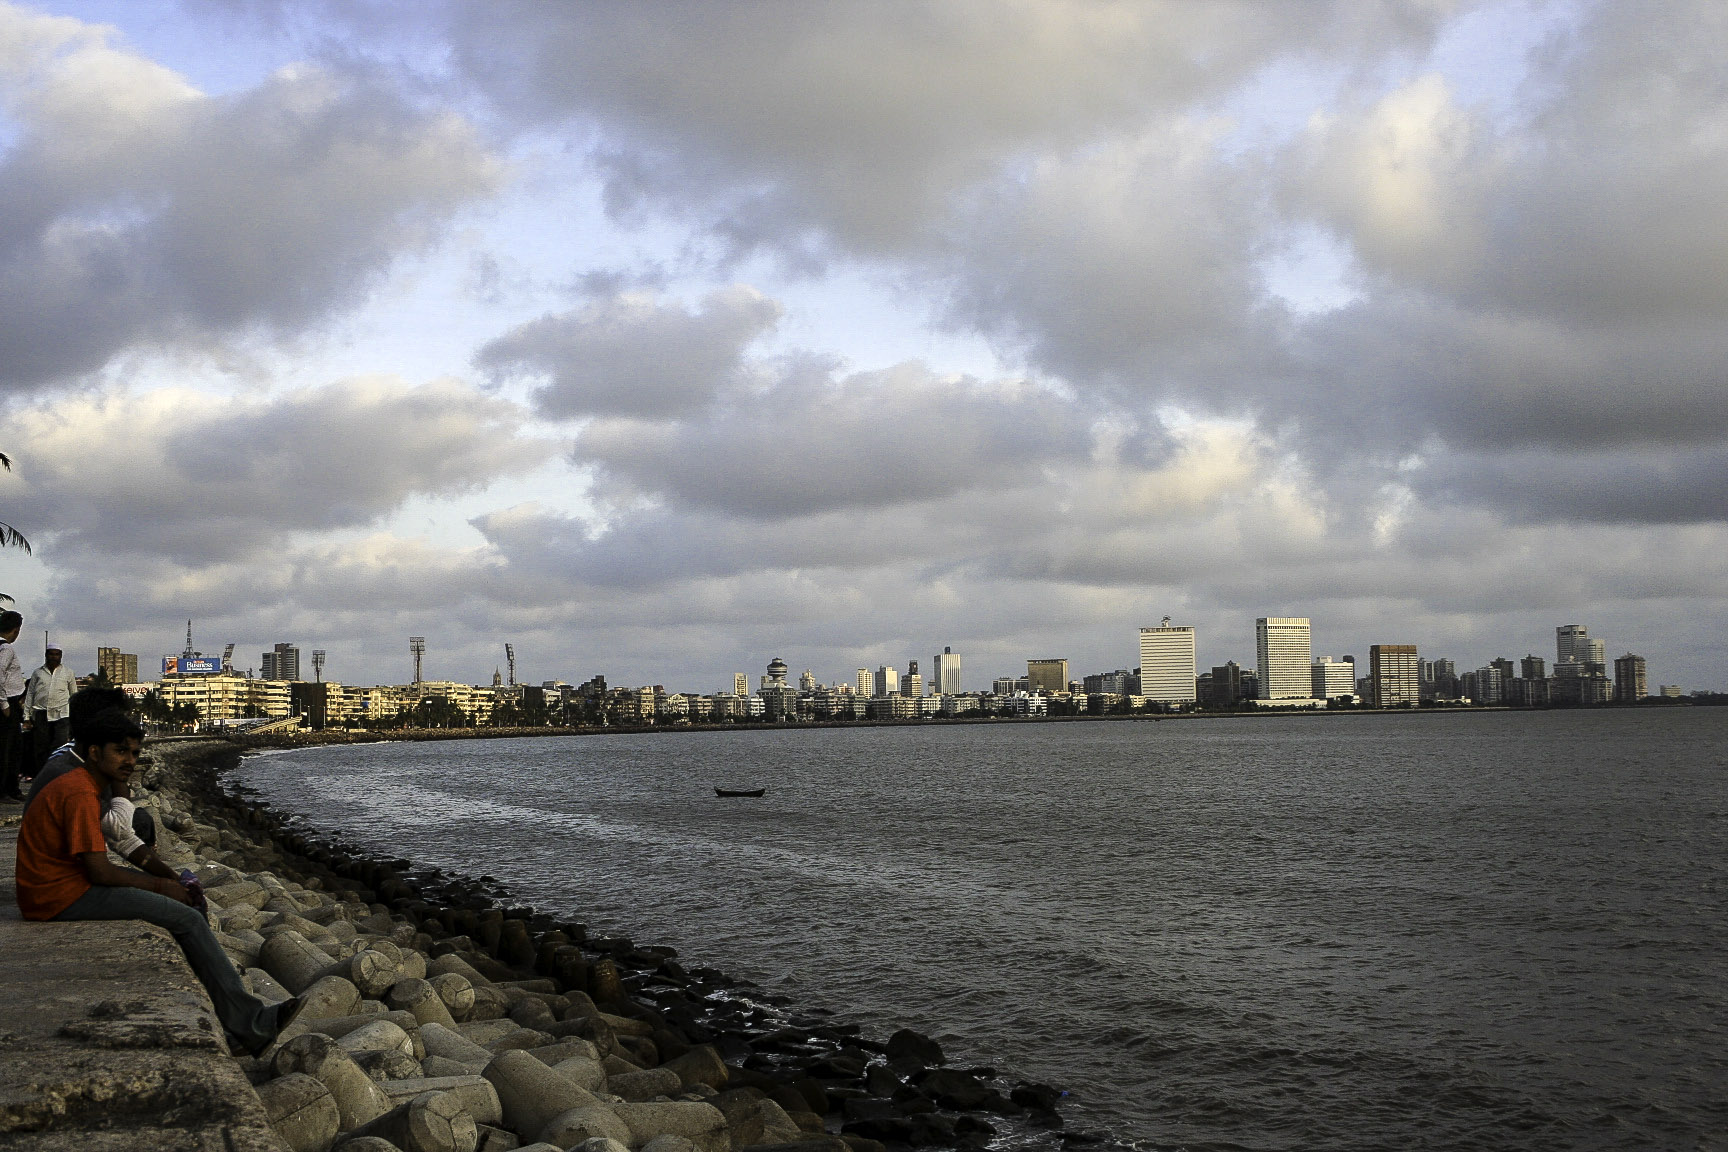 Visit Marine Drive(Sonapur) in Mumbai-Completely Different Picture in the Morning and in the Evening